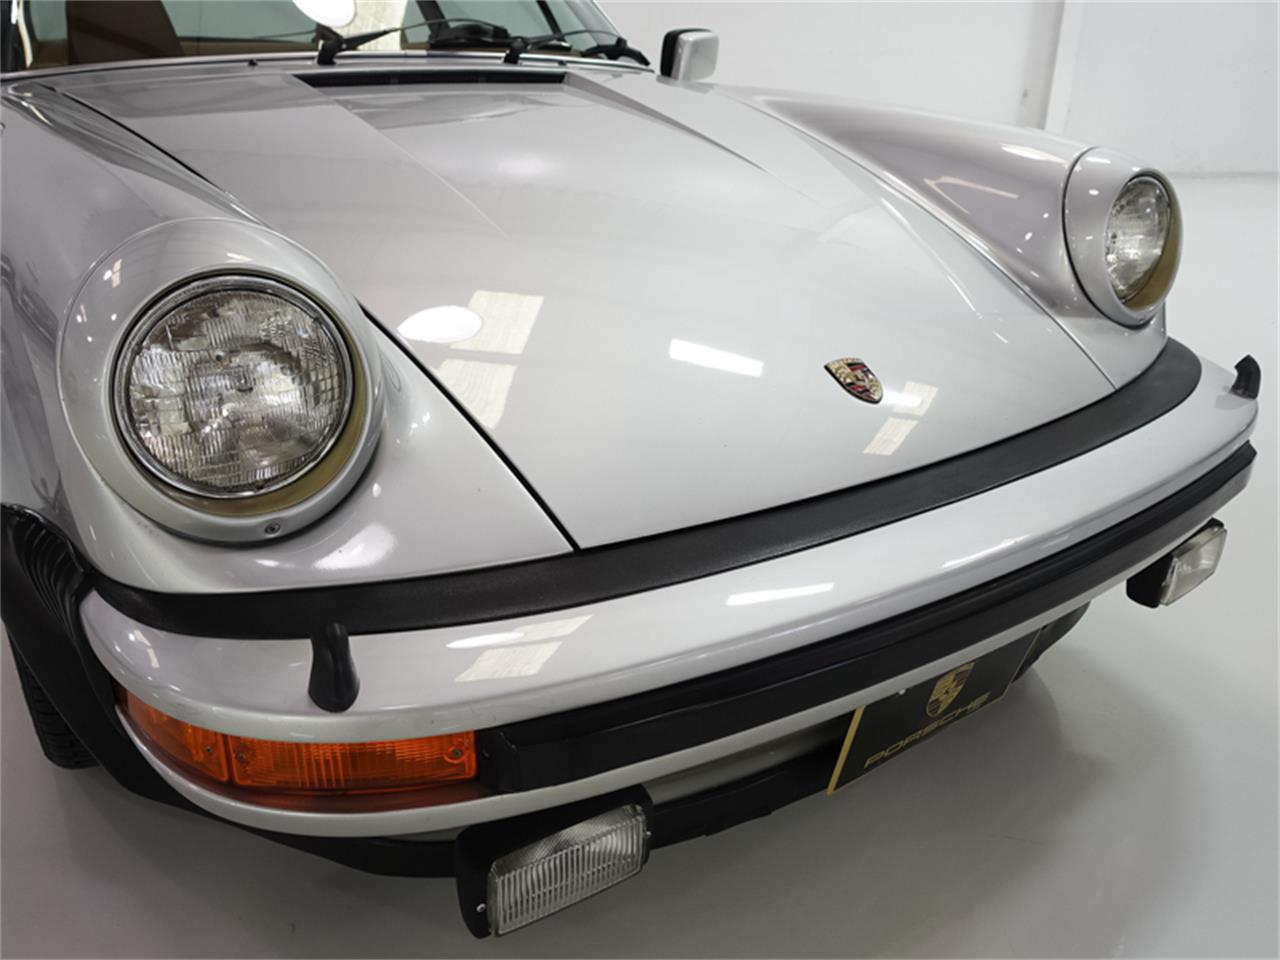 Large Picture of '76 Porsche 930 Turbo located in Missouri - $229,900.00 - FXKC